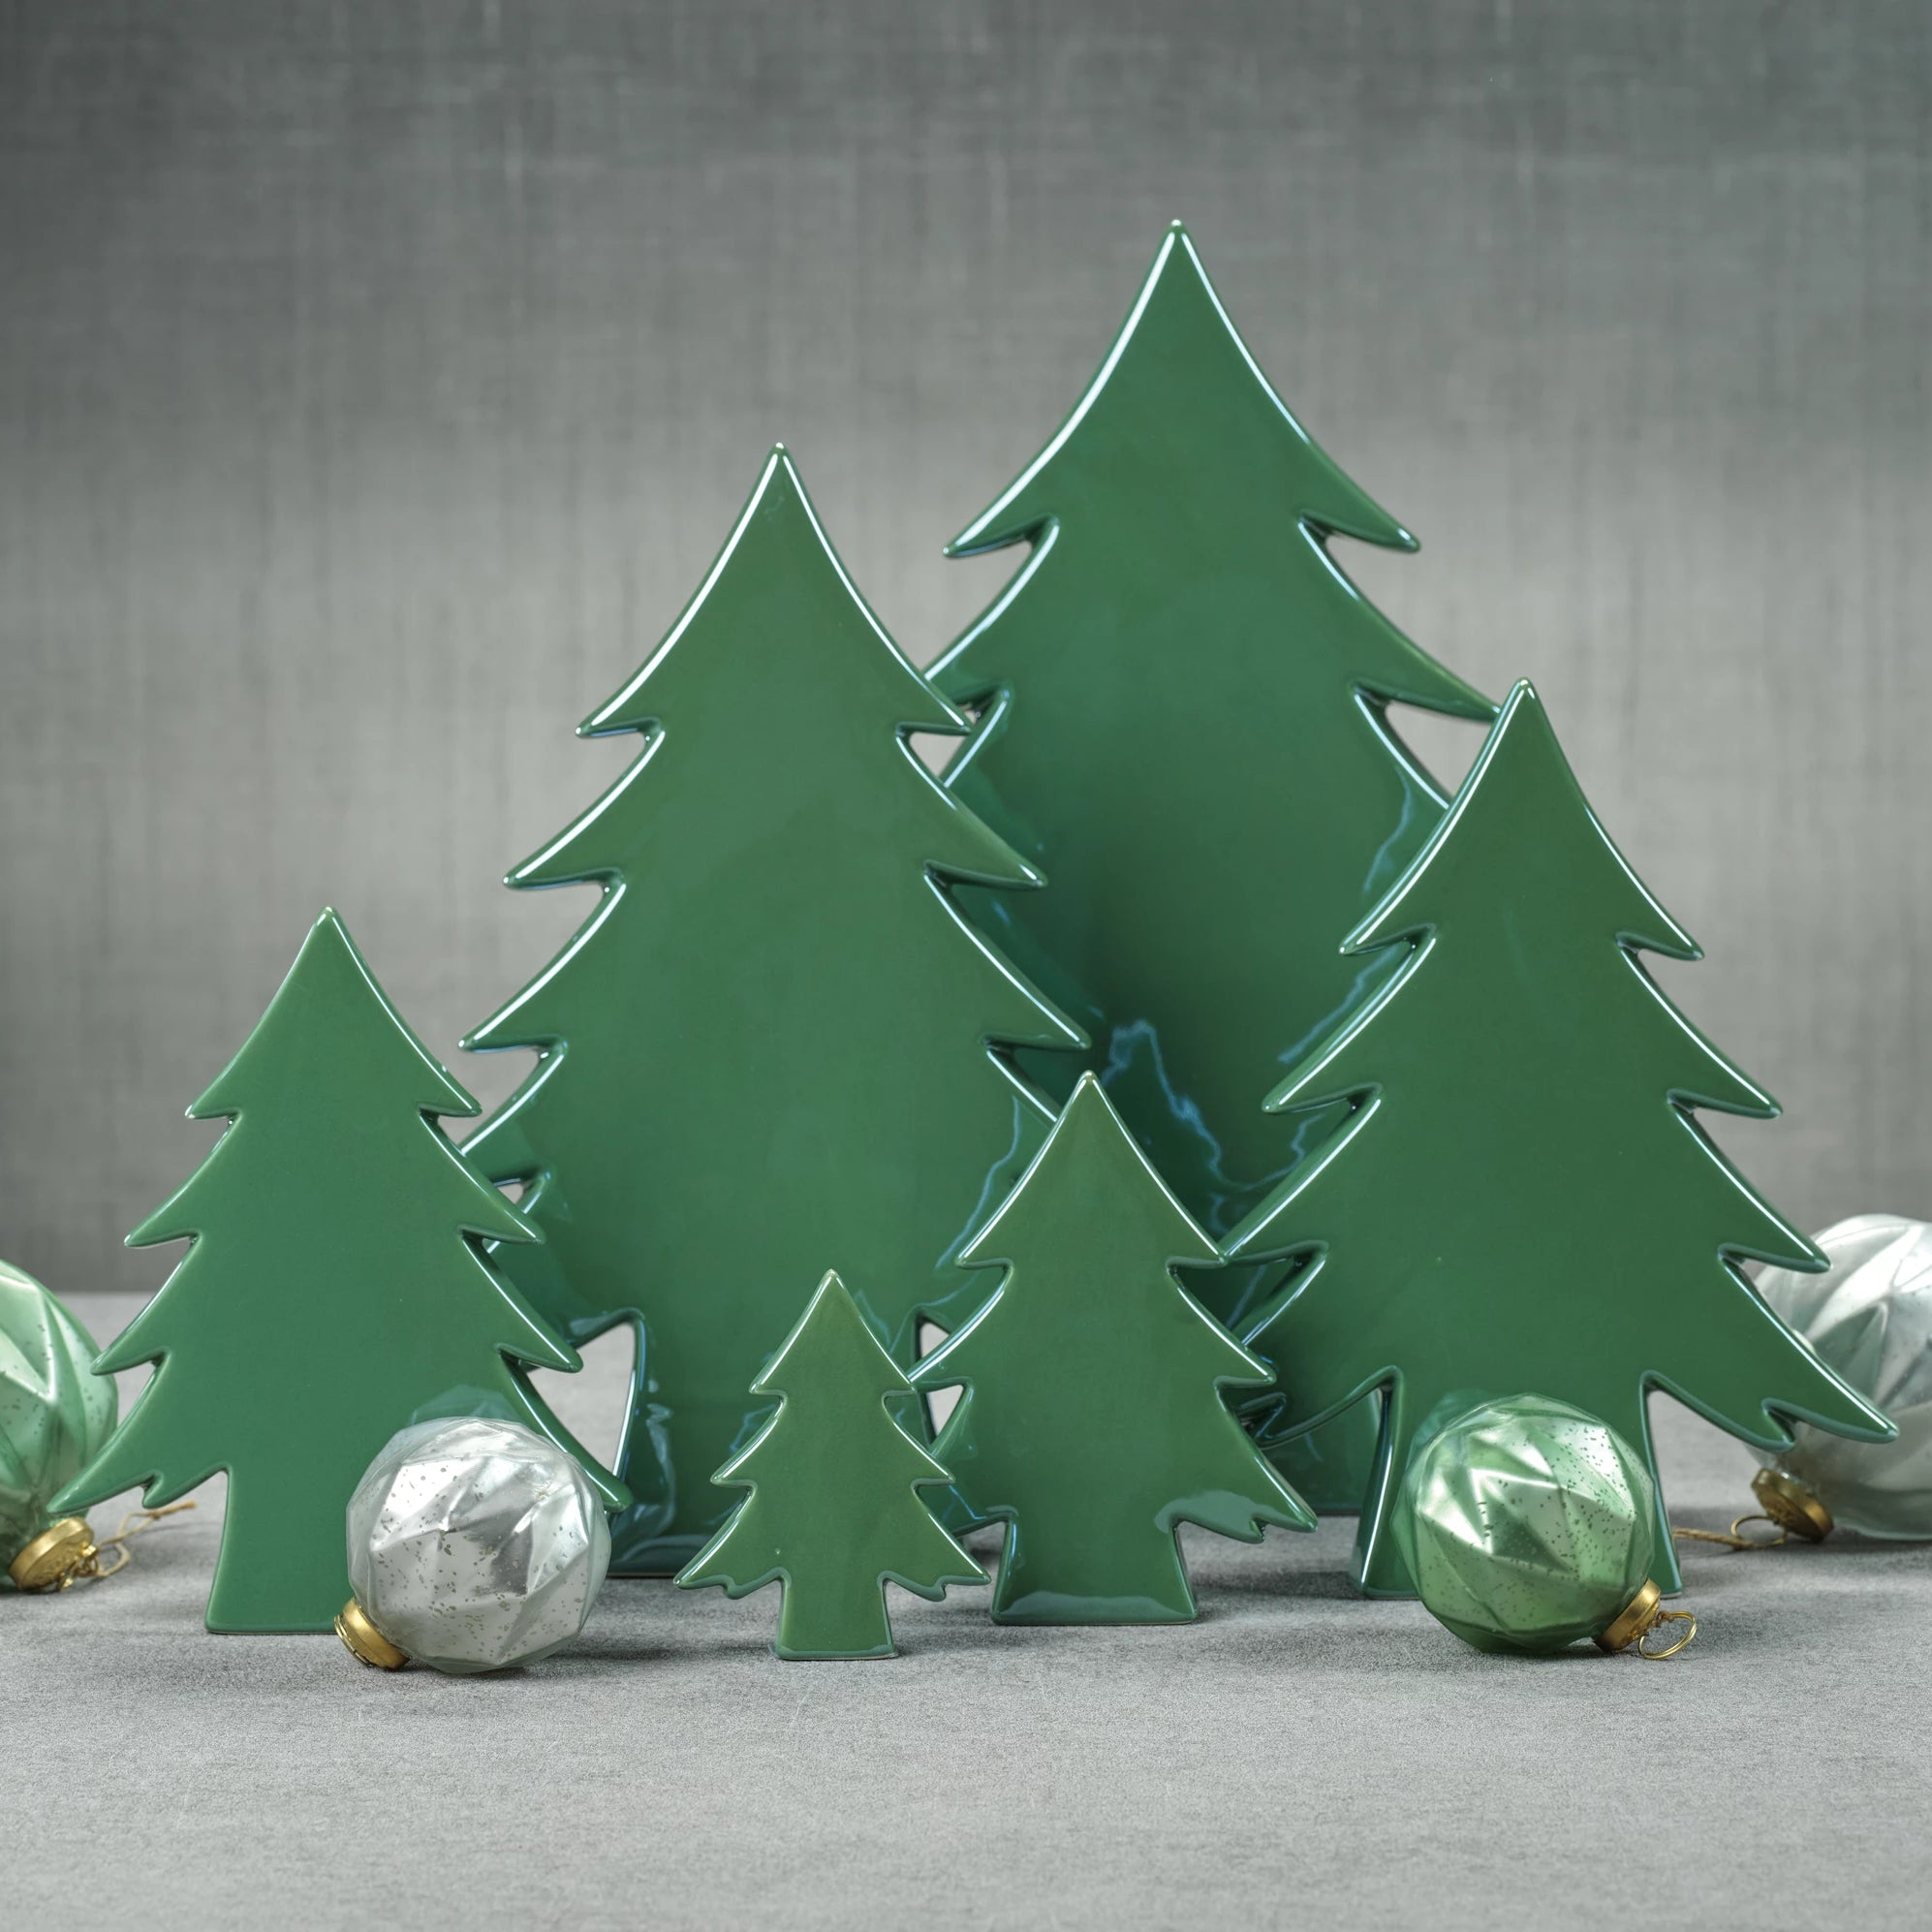 Teton Green Ceramic Tree - CARLYLE AVENUE